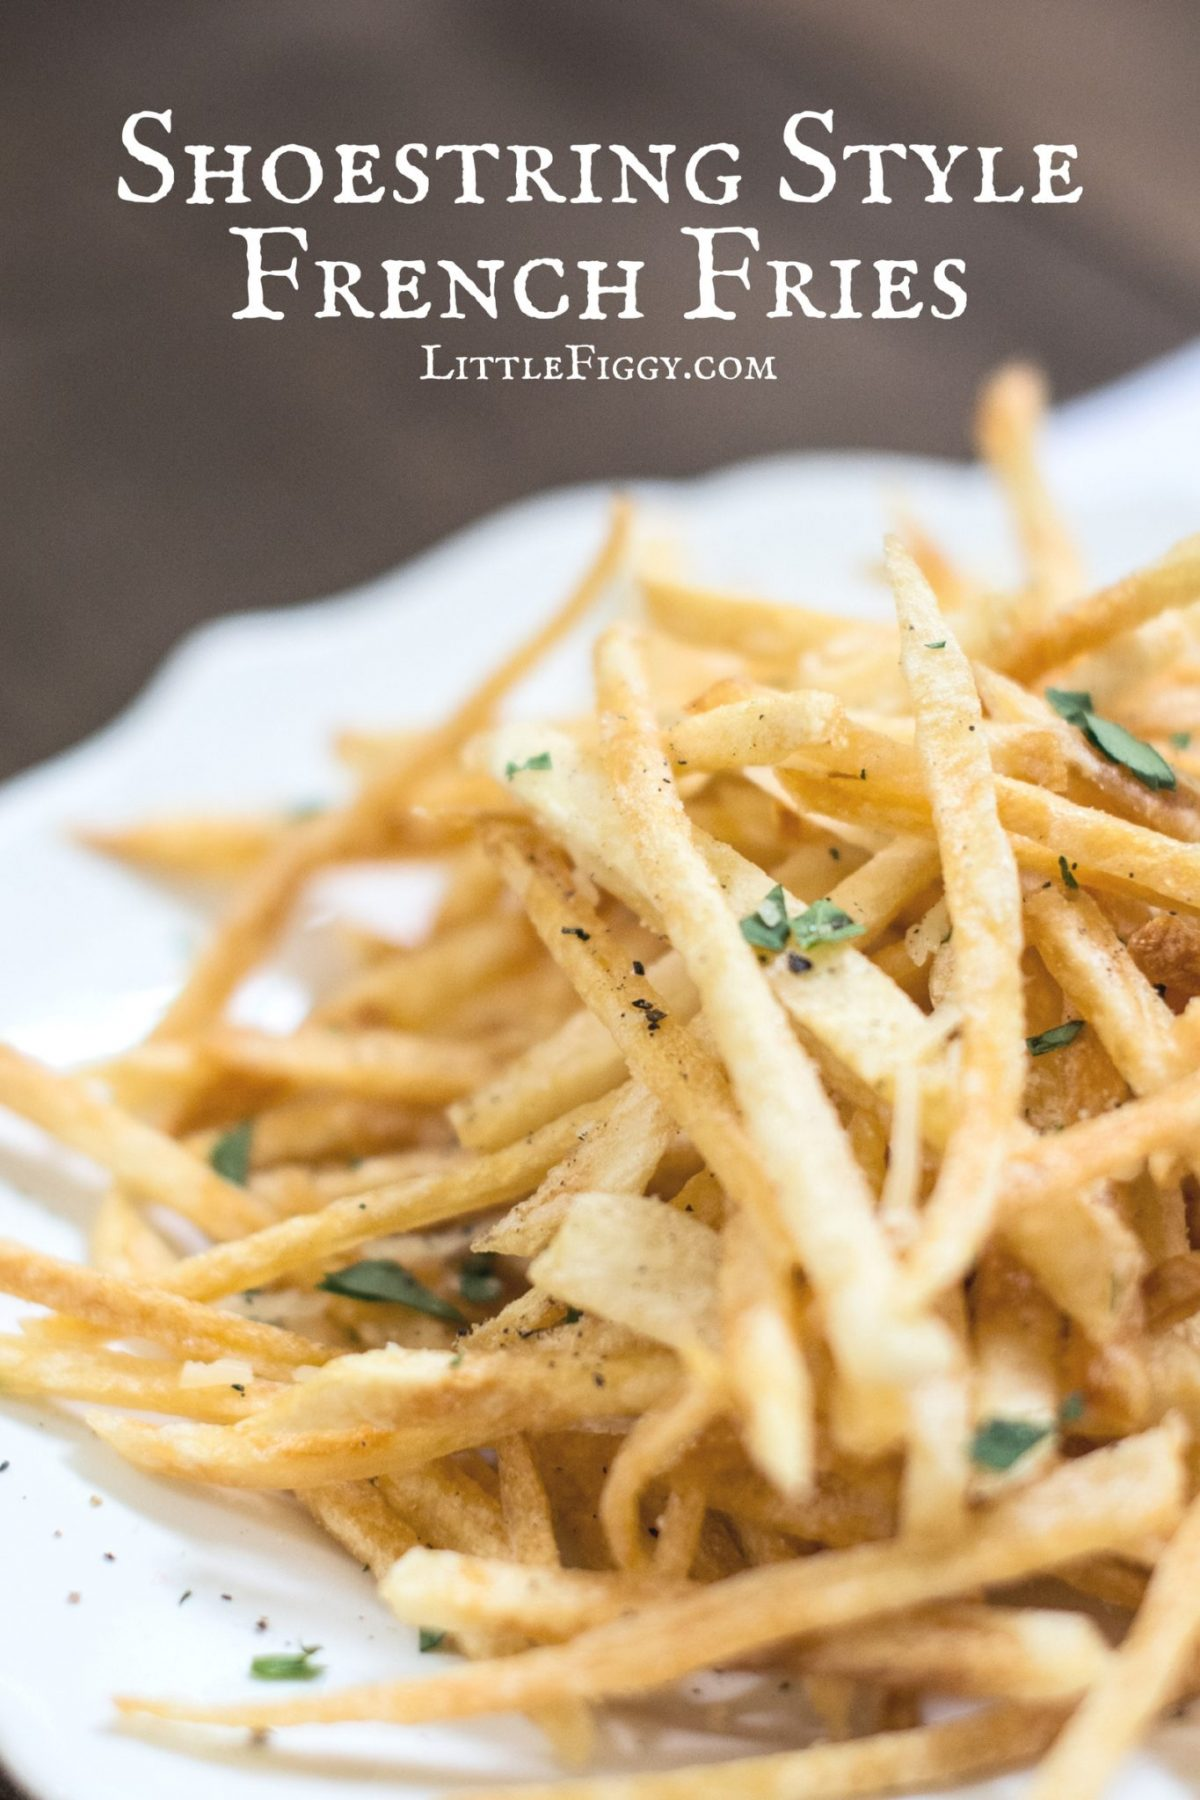 the history of french fries Our french fries are born from premium potatoes such as the russet burbank and the shepody with zero grams of trans fat per labeled serving, these epic fries are crispy and golden on the outside and fluffy on the inside.